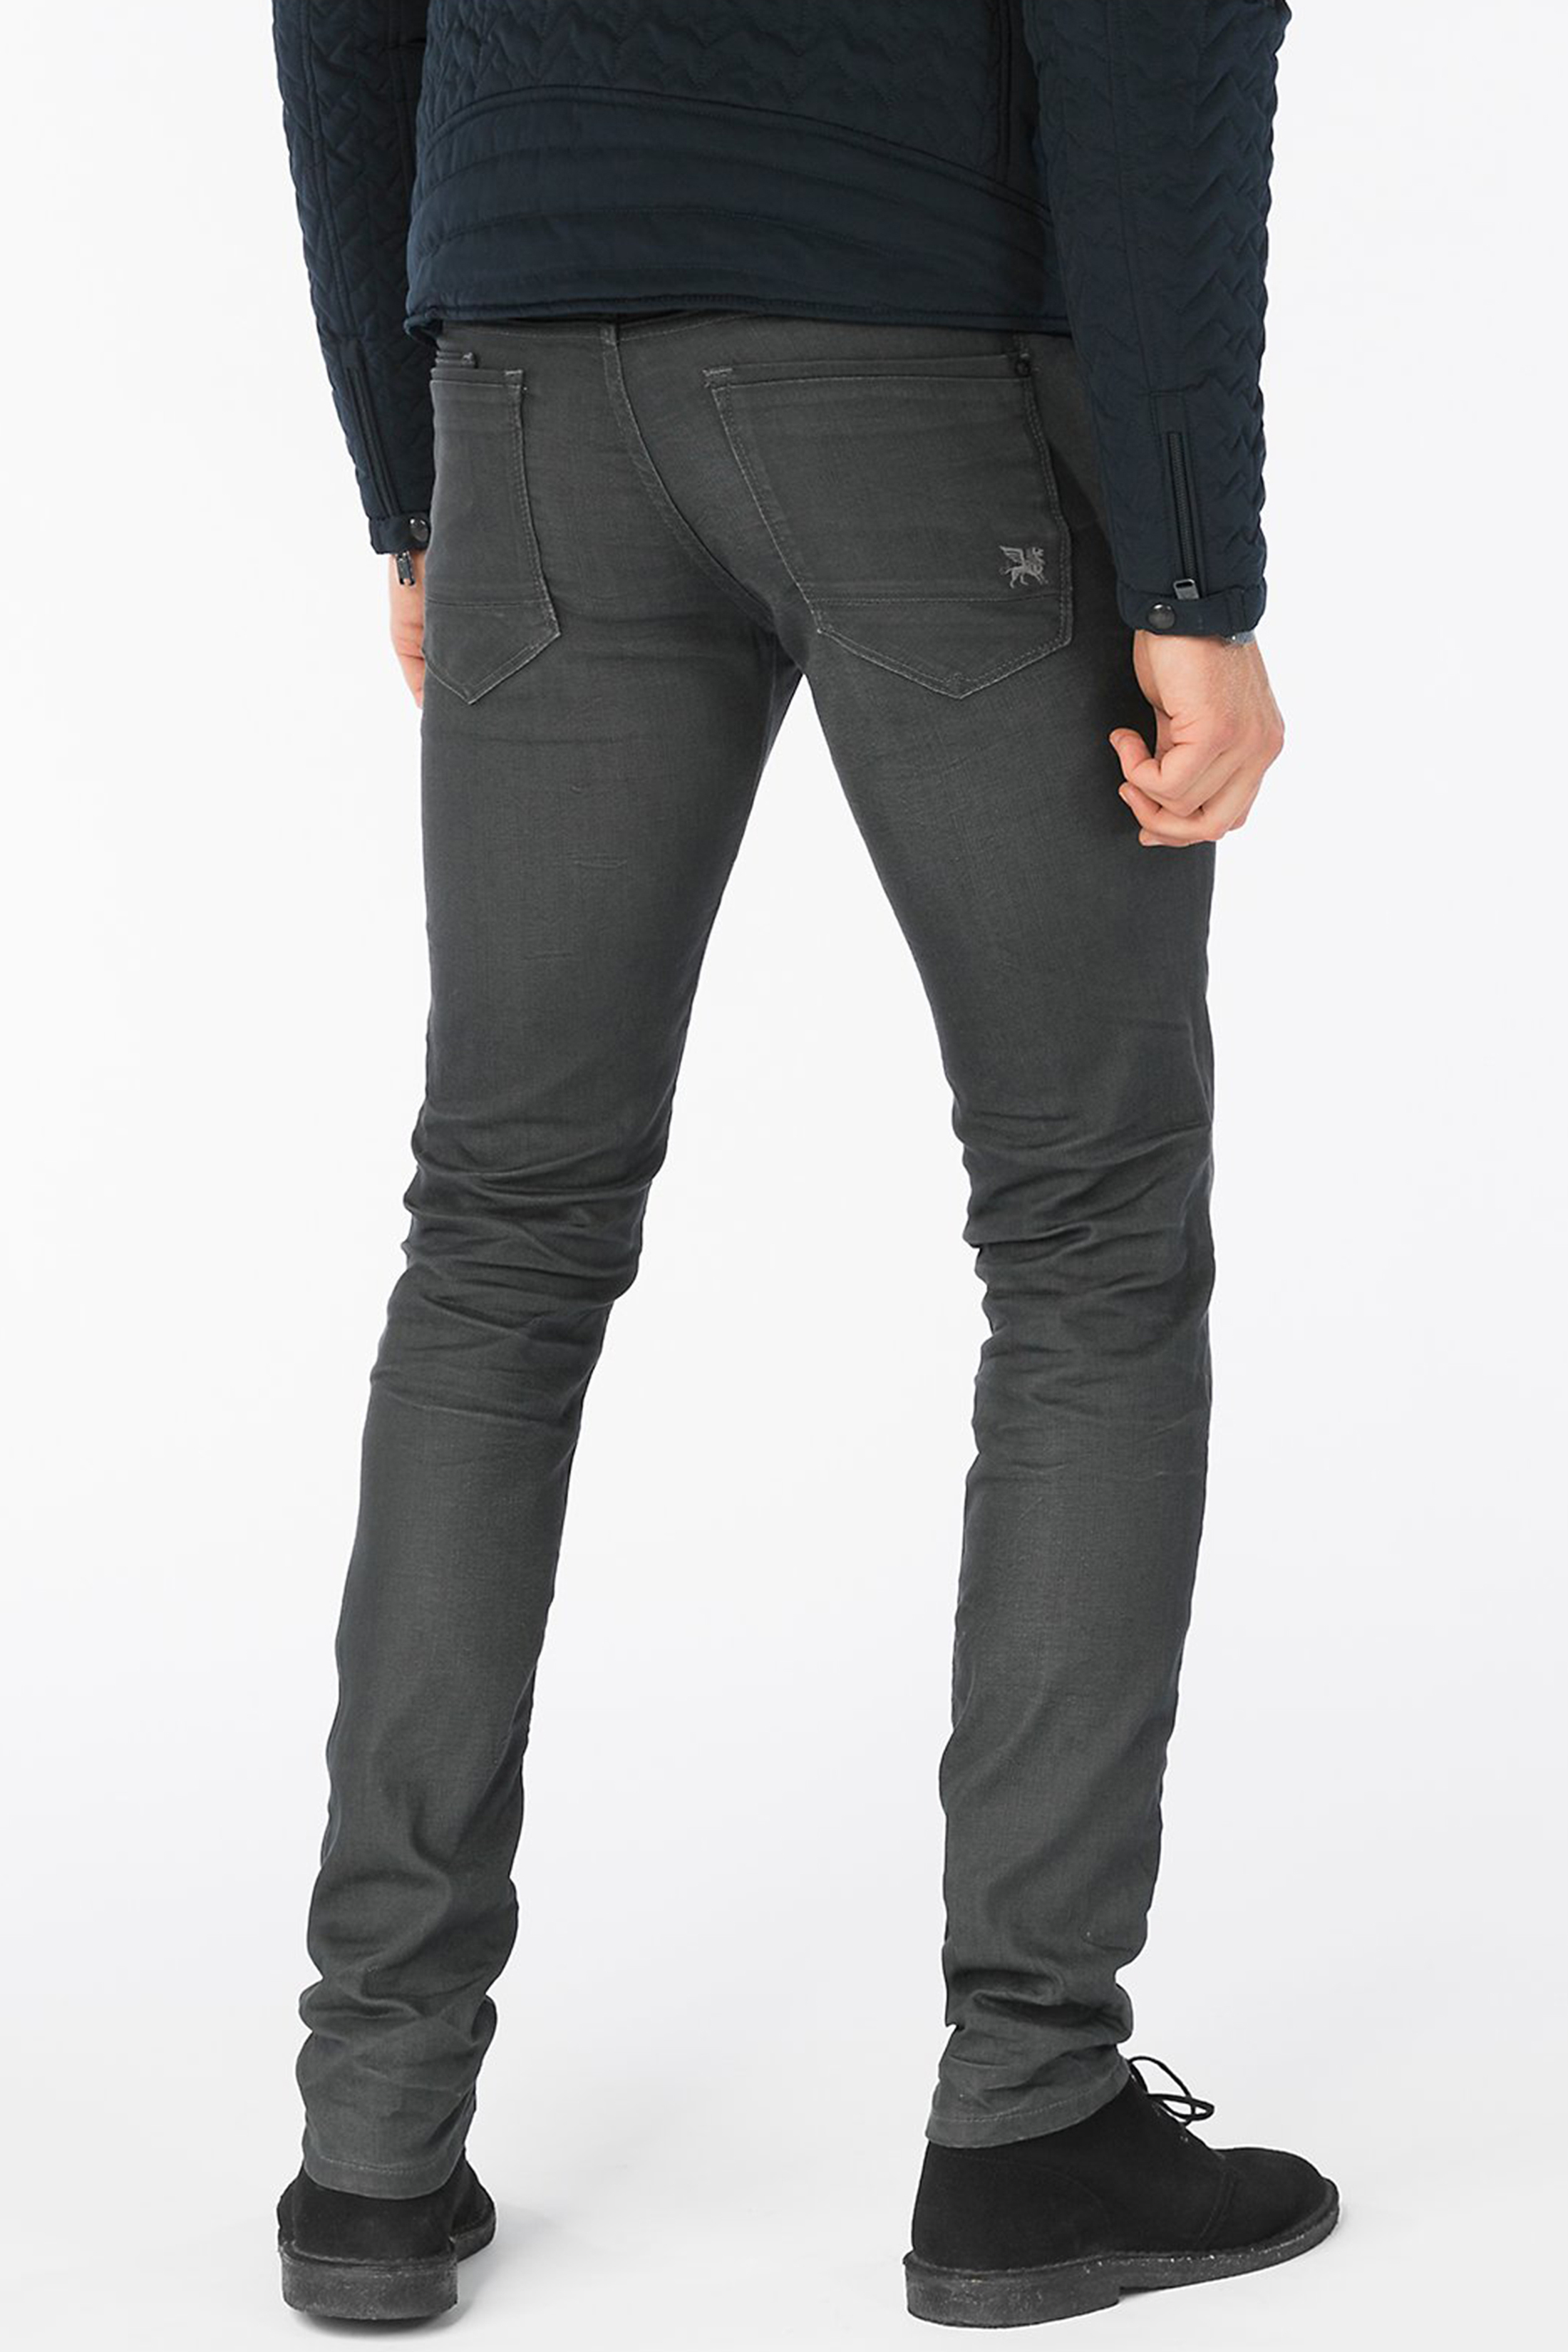 Vanguard V8 Racer Jeans Dark Grey foto 6